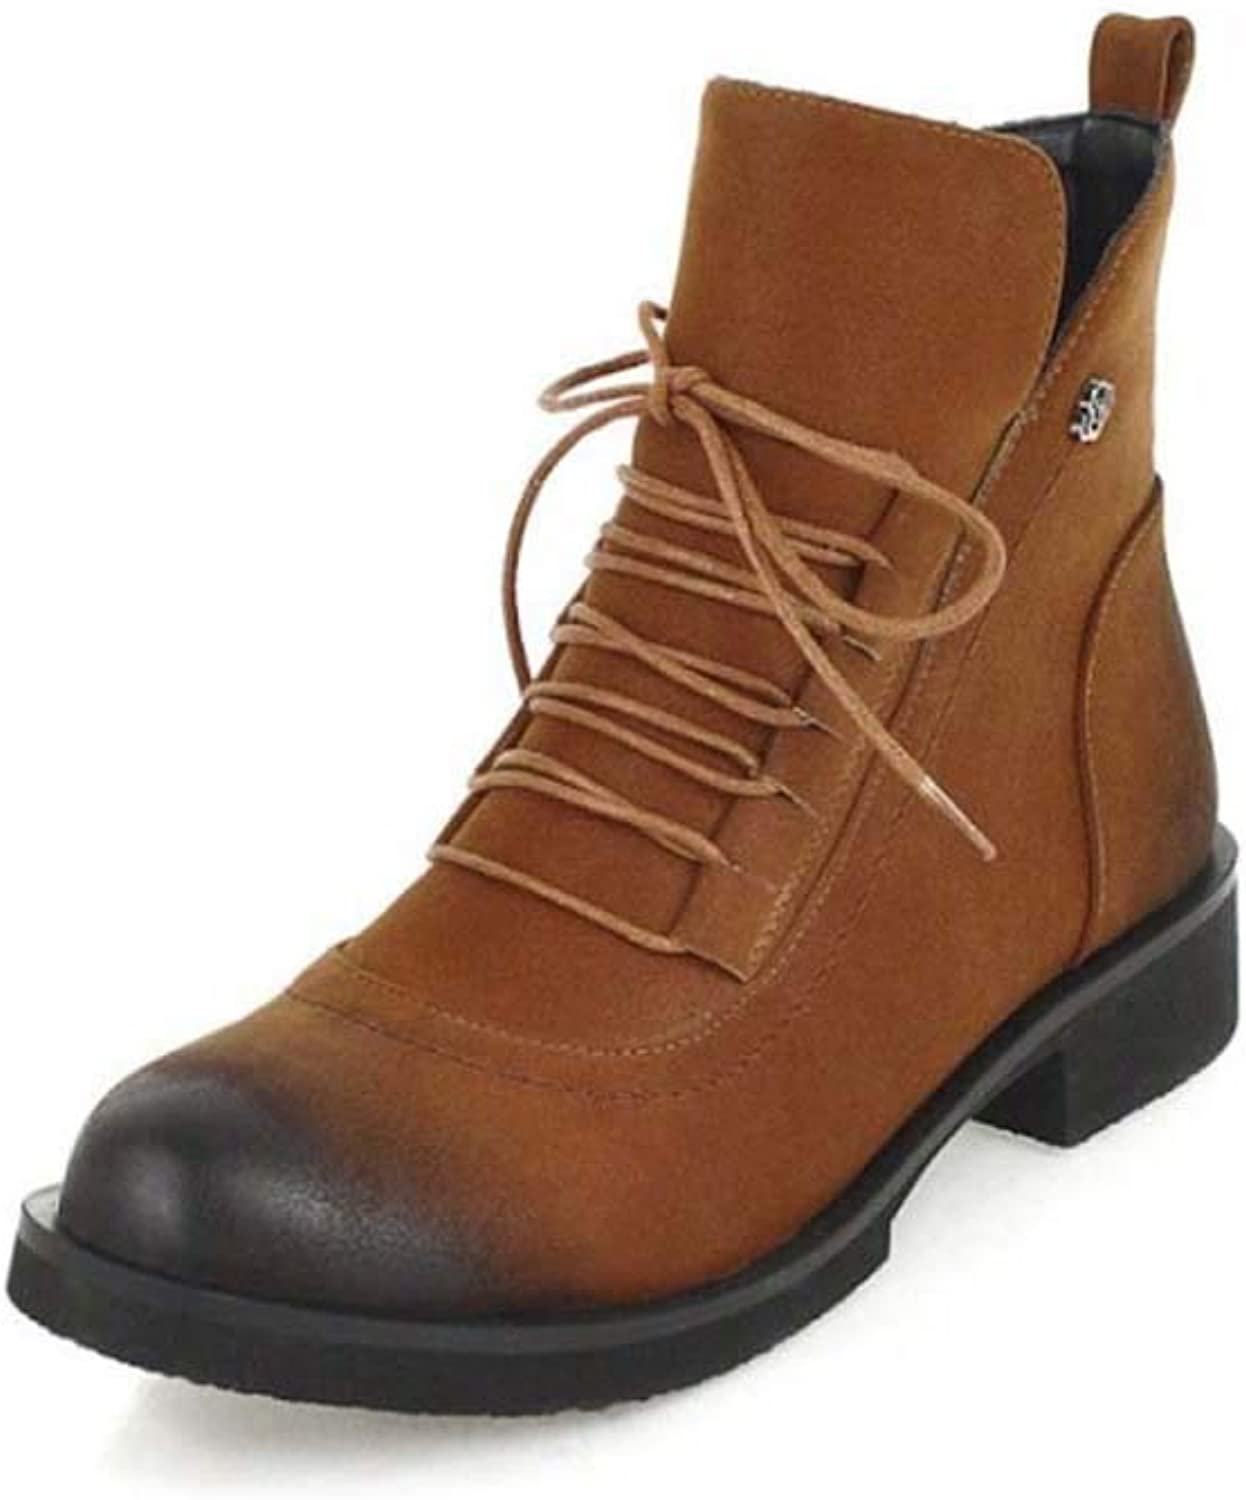 Martin Boots Leather Waterproof Classic Lace Short Ankle Boot Ladies Casual Comfortable Low shoes Classic Chelsea Ankle Boots,Brown,44EU